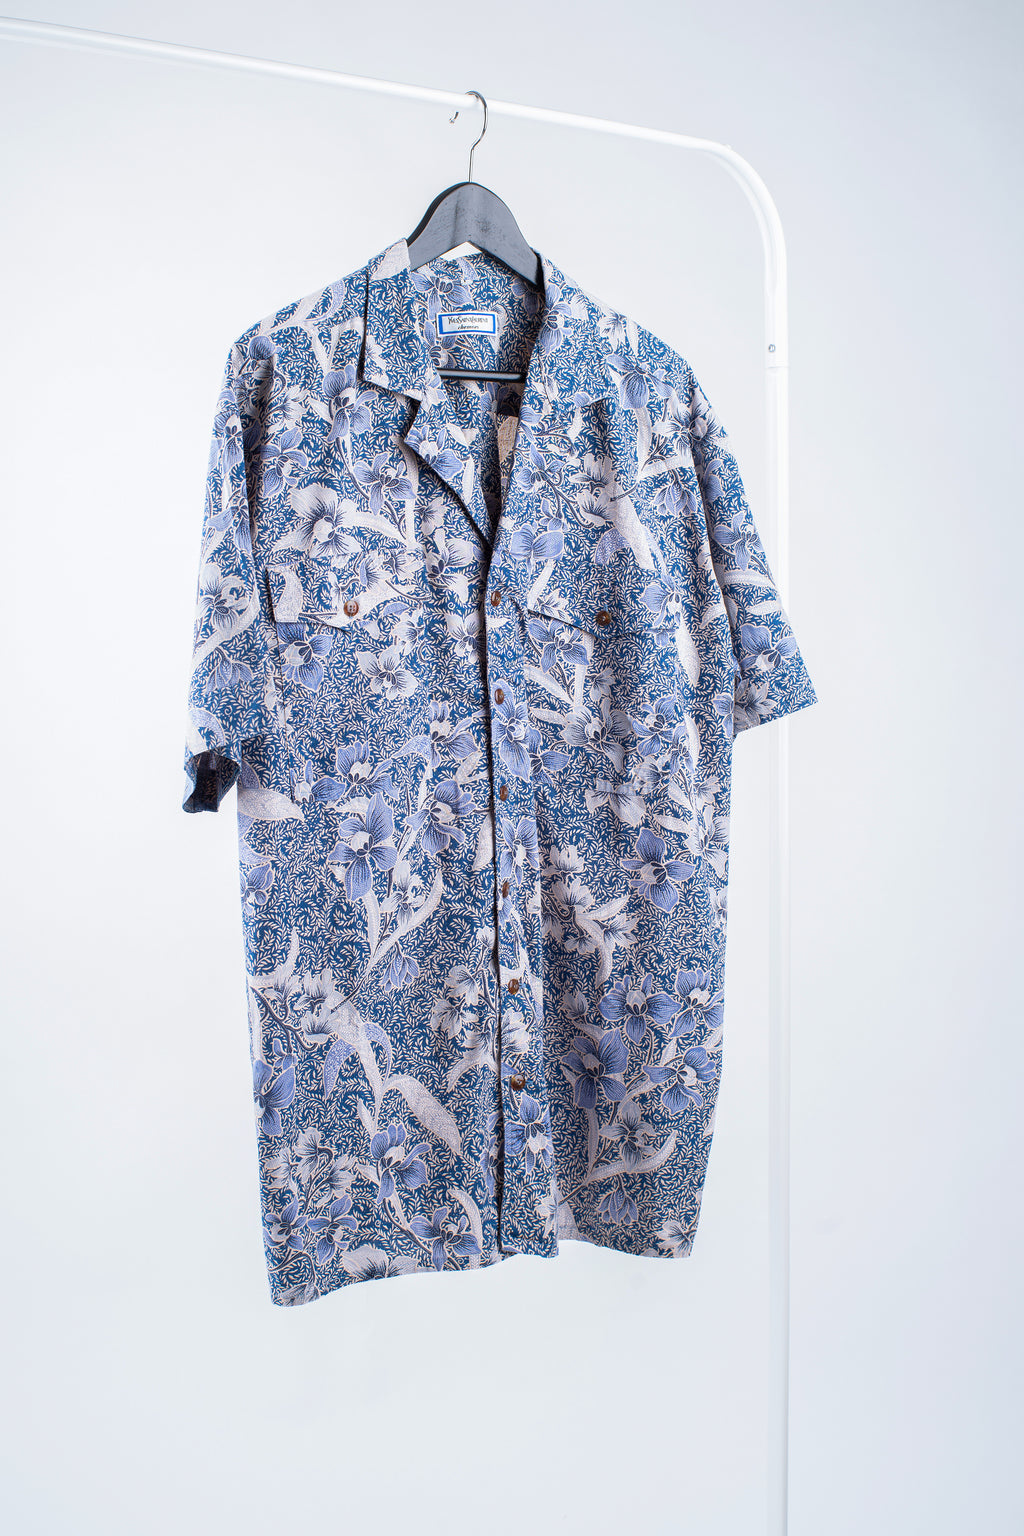 Yves Saint Laurent Vintage Men's Cotton Hawaiian Blue Shirt, Size L